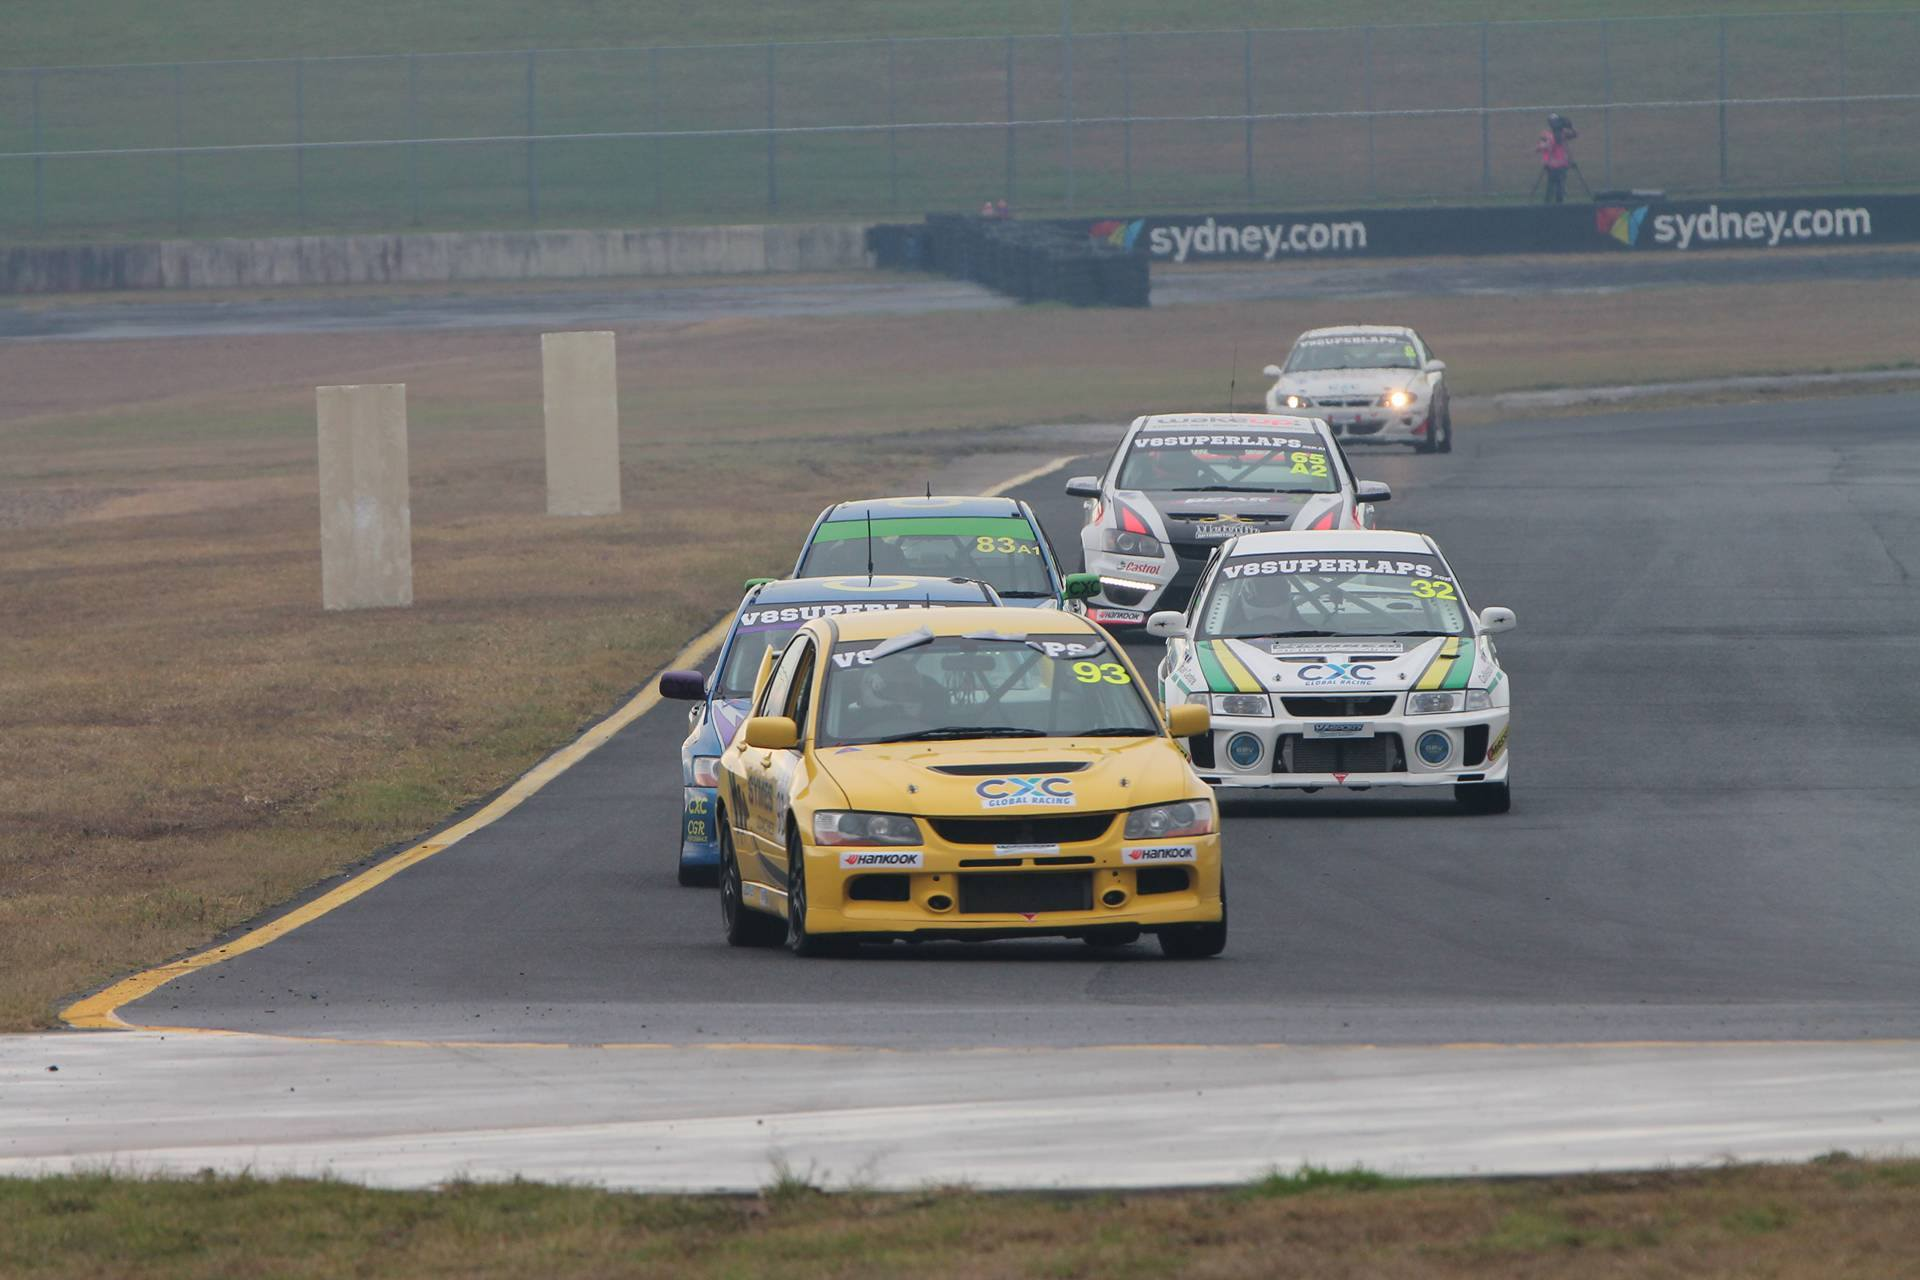 We here at Zak Sports Media are very excited to be heading to Lakeside International Raceway on the opening weekend of June. The event is the first interstate event confirmed for the 2017 V8 Superlaps Production Touring Cars Championship.